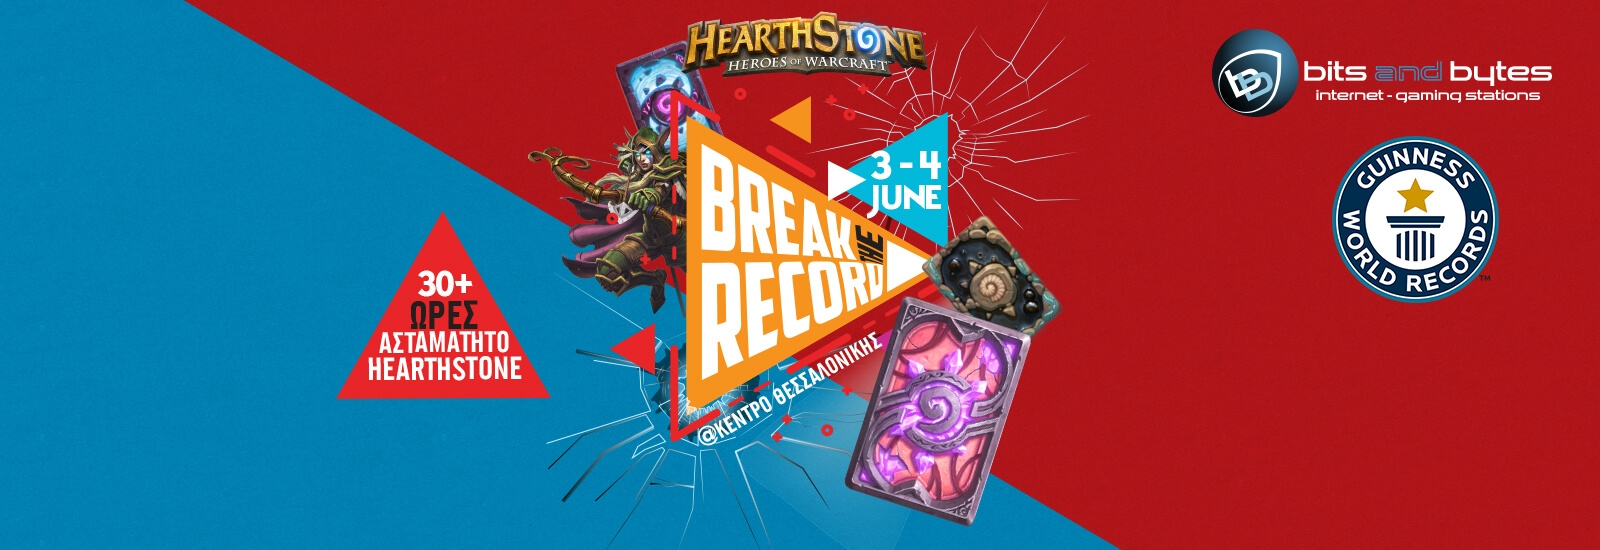 Break the Guinness Record: Hearthstone 30+ hours gameplay